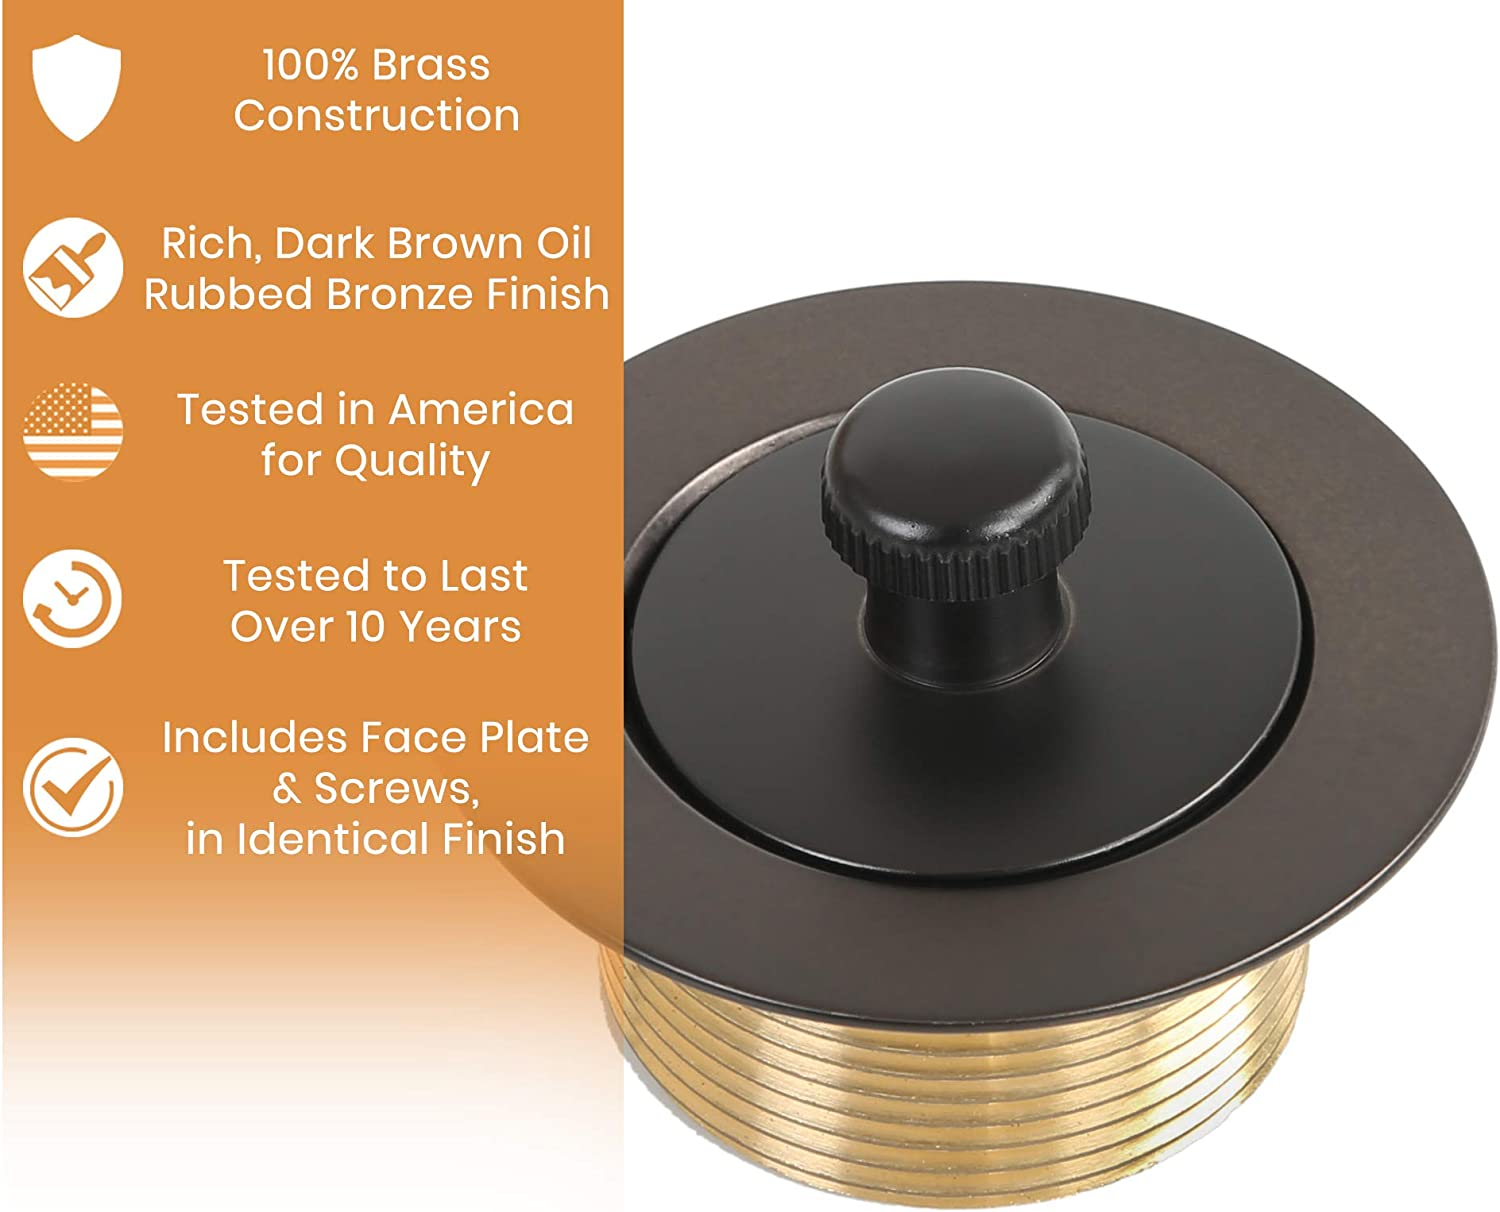 100% Brass Lift and Turn Bathtub Drain - Oil Rubbed Bronze Finish - Bathtub Conversion Kit - Handyman Designed & Quality Tested - Will Fit All Bathtub Drains